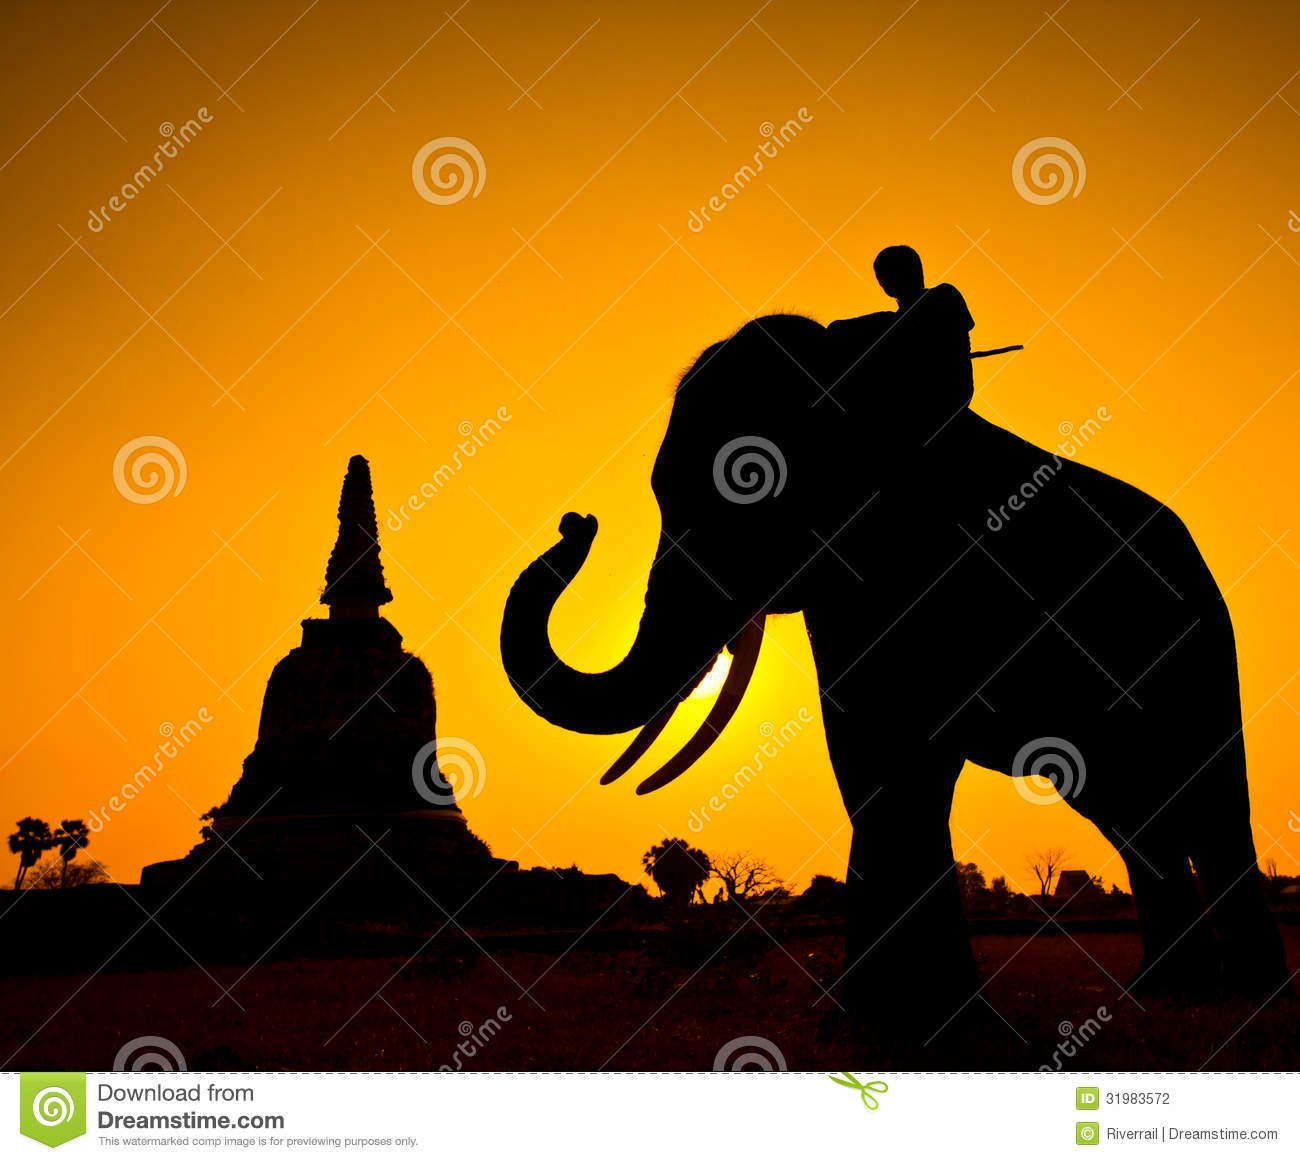 Stock photography: elephant and pagoda wiith sunset scene